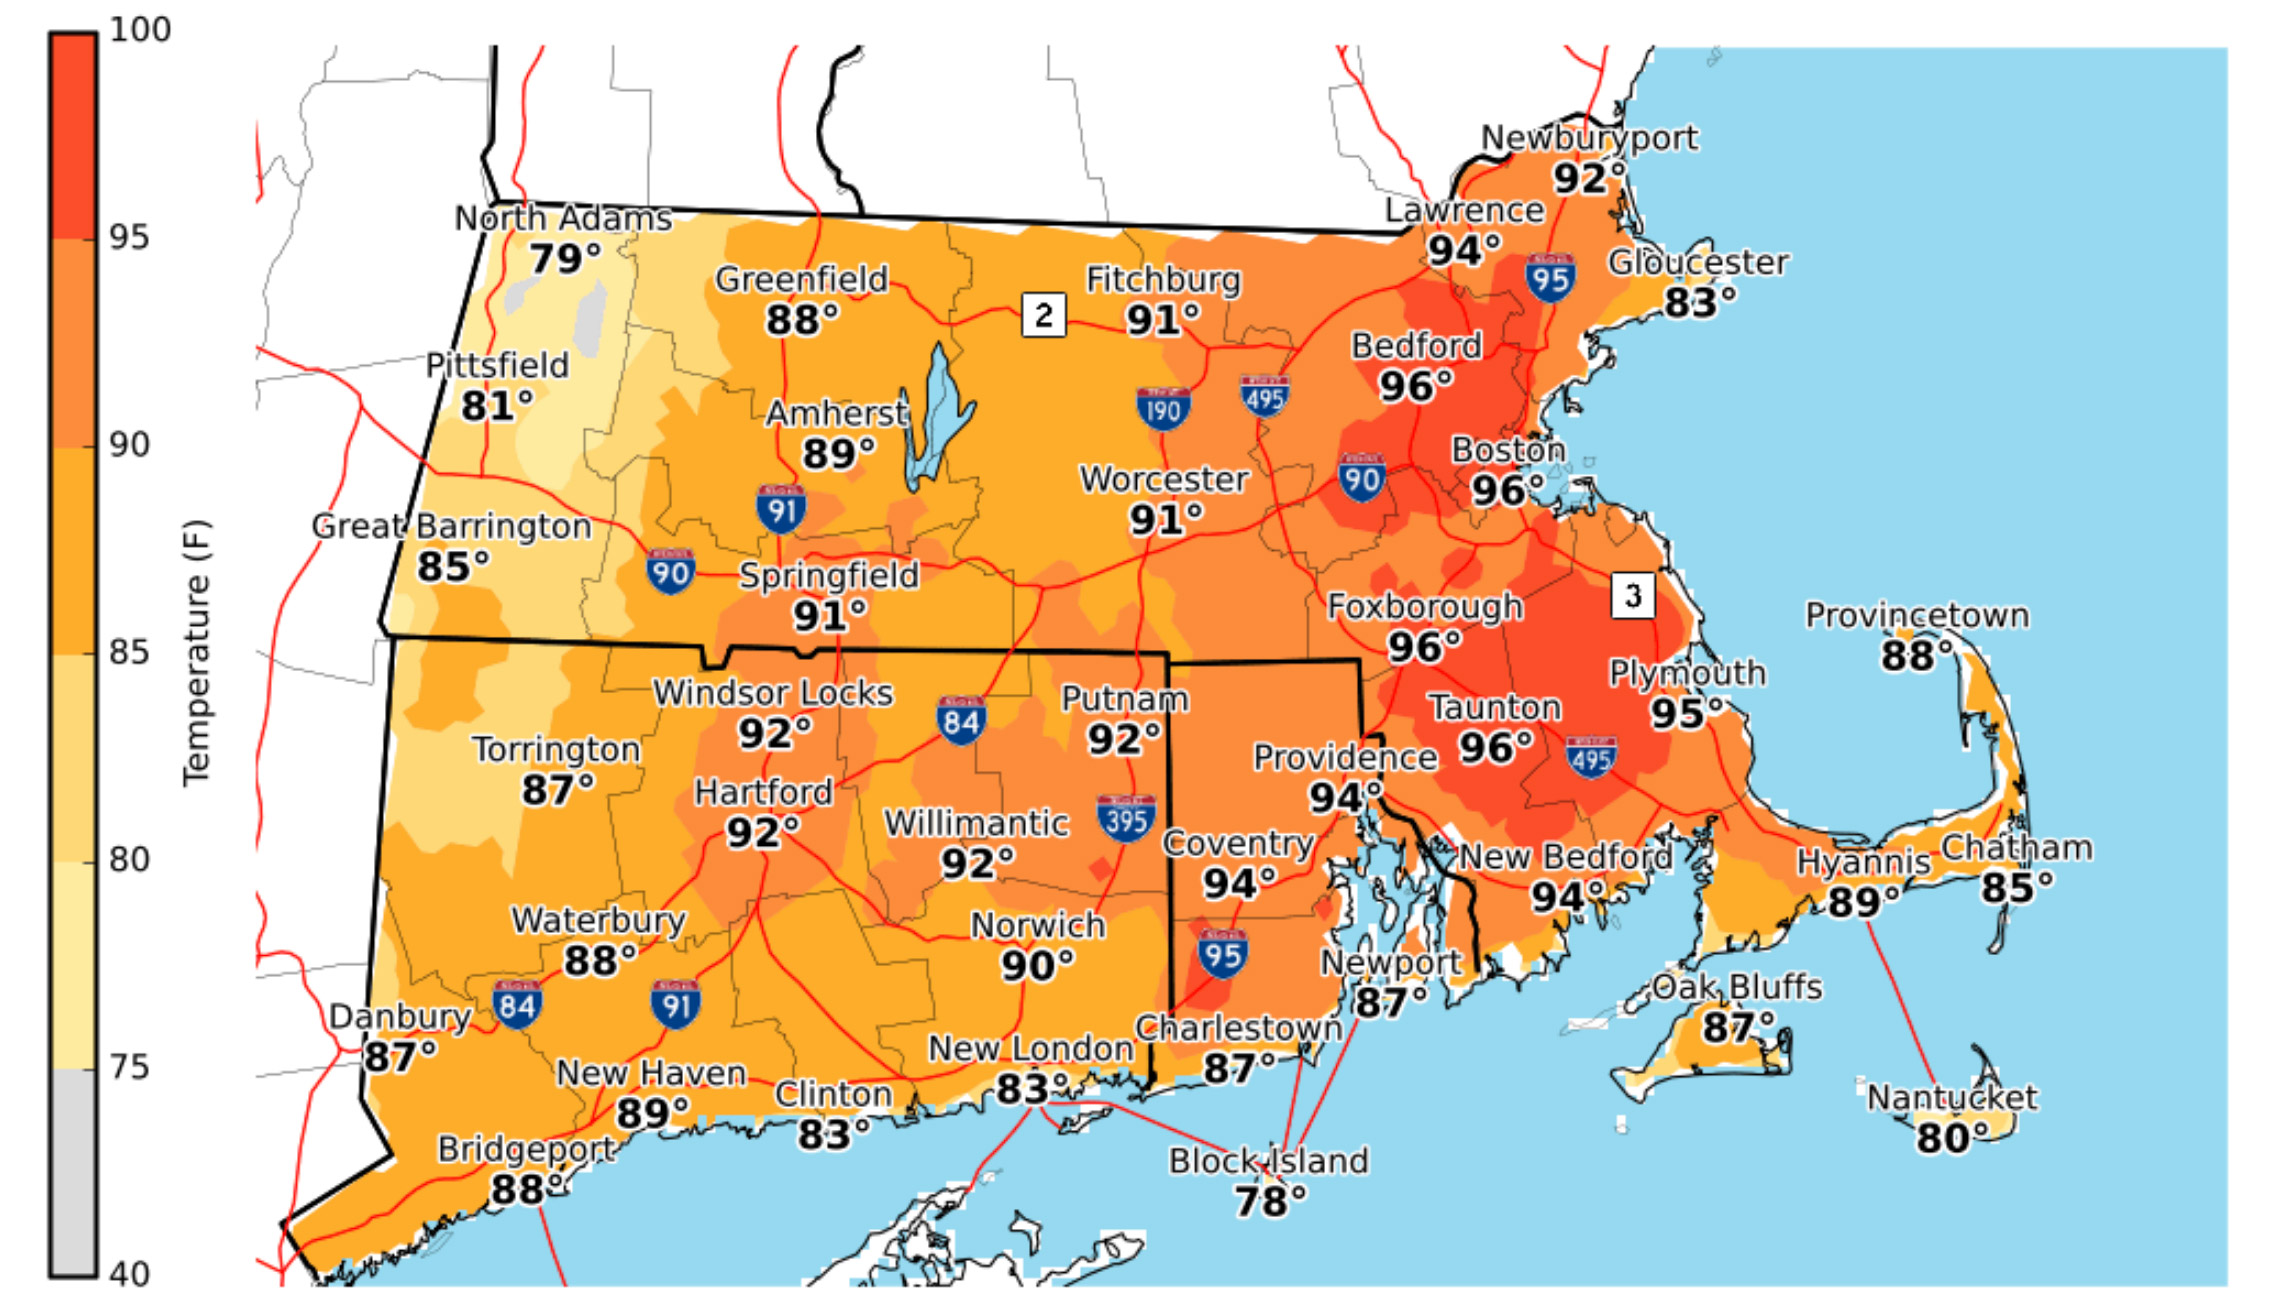 a temperature map of Boston during extreme heat on July 31